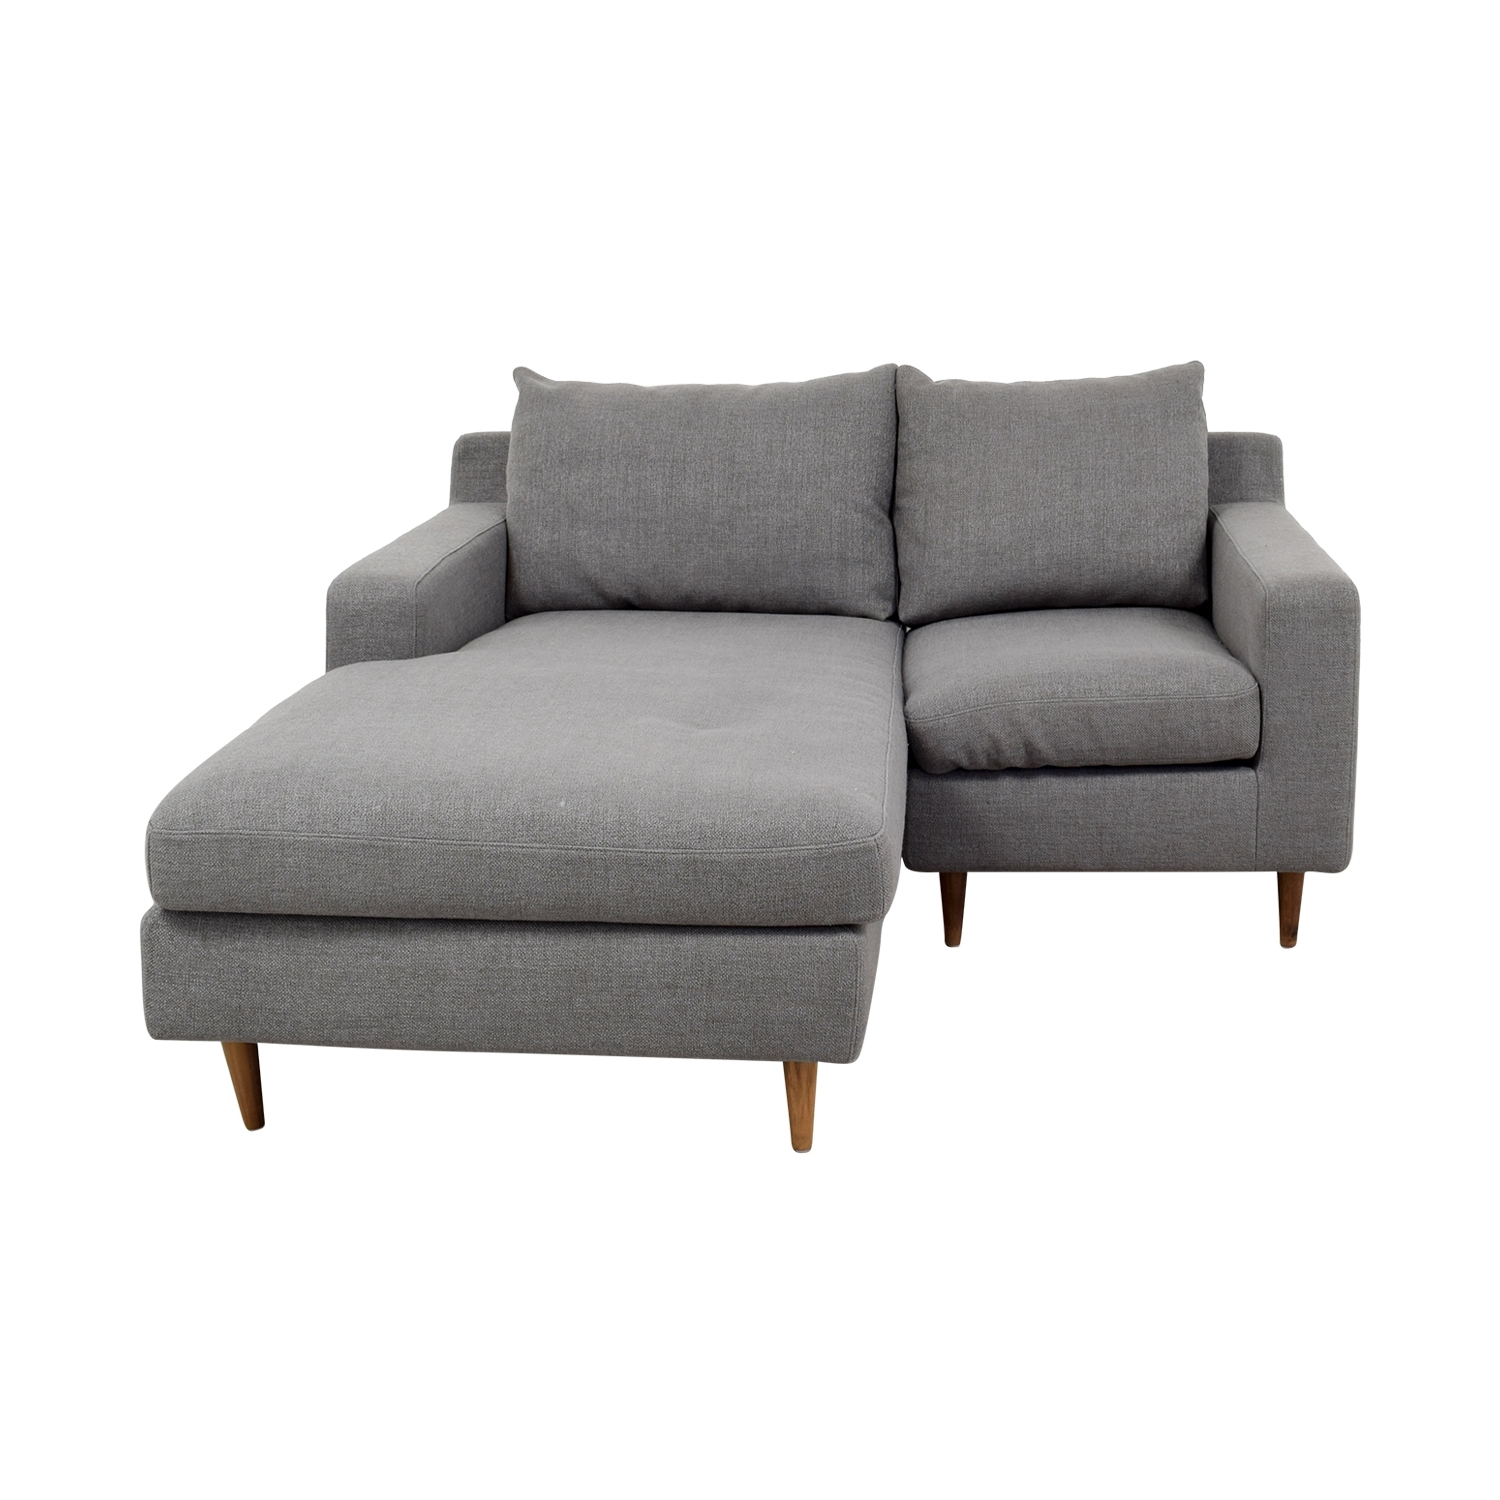 [%80% Off – Interior Define Interior Define Custom Grey Loveseat Pertaining To Famous Chaise Loveseats|Chaise Loveseats Within Newest 80% Off – Interior Define Interior Define Custom Grey Loveseat|Famous Chaise Loveseats Throughout 80% Off – Interior Define Interior Define Custom Grey Loveseat|Fashionable 80% Off – Interior Define Interior Define Custom Grey Loveseat Throughout Chaise Loveseats%] (View 1 of 15)